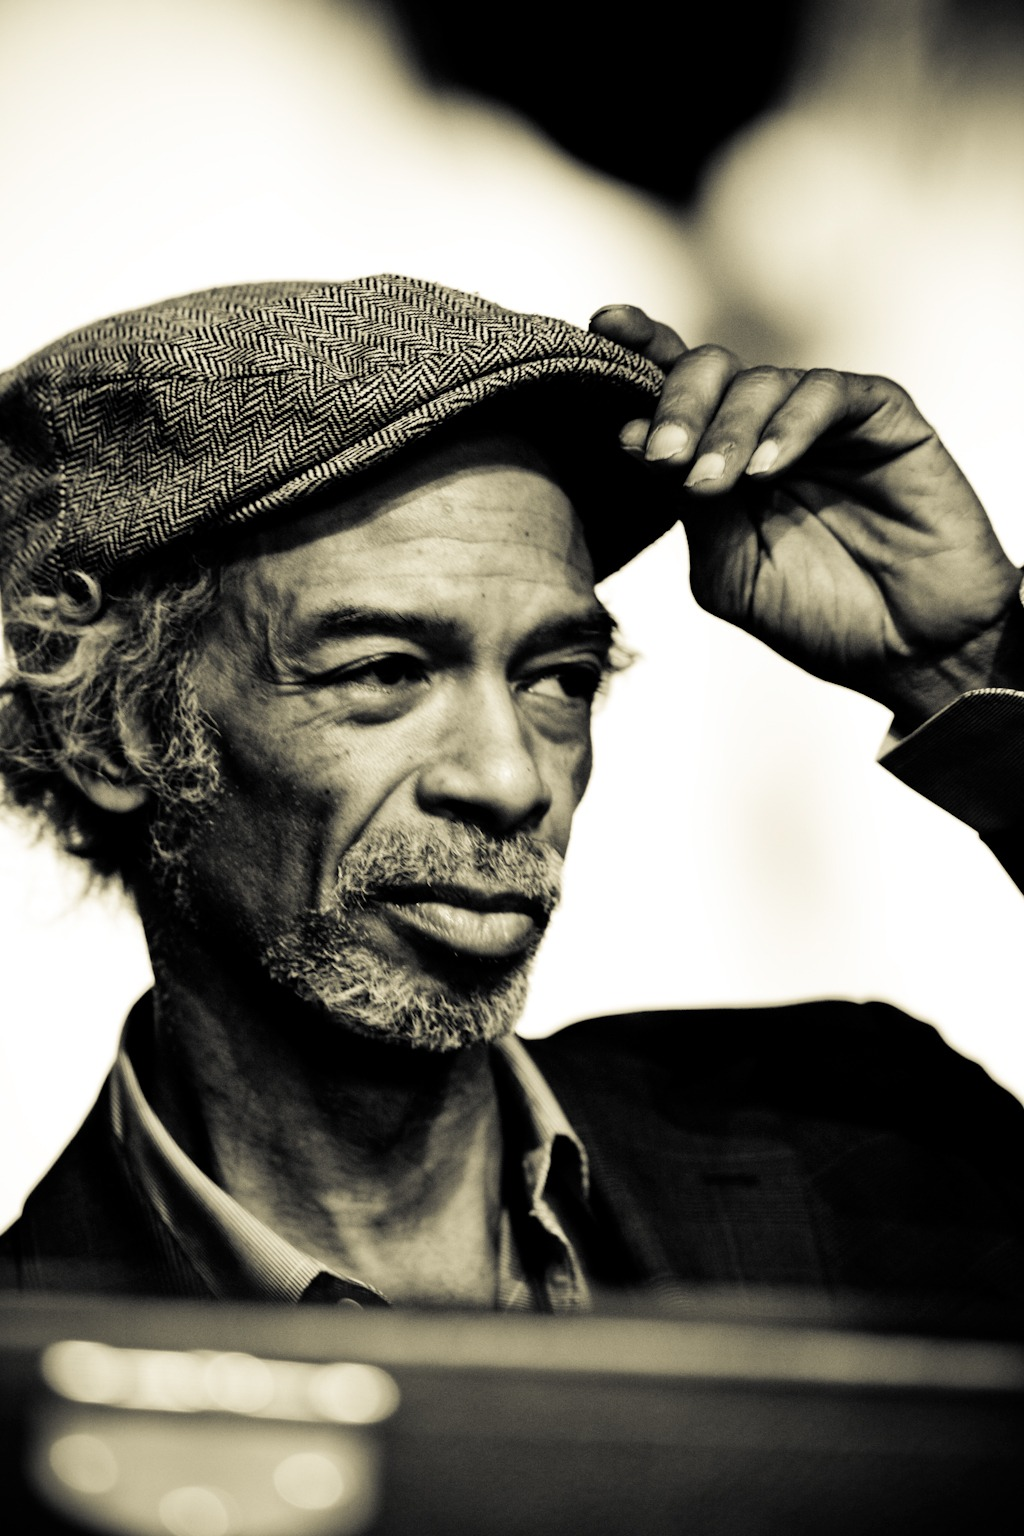 "Today marks the born day of an American born icon, literary genius, and Spoken Word great, Gil Scott Heron.    Gil Scott Heron is my foremost artistic father and inspiration. Having the opportunity to perform as an opening act for him was and will remain one of the greatest and most humbling experiences of my life.       As a teen, listening to his work did for me what my teachers, government, and community failed to fully do; be honest about our plight and give indictment to the authors of my poverty. Gil as one man represented a million men and women. That lost but (barely) in tact tribe of ghetto intellectuals who could hold their own at any Ivy League institution but may have also been addicts, fiends, and or incarcerated.       My father has battled with addiction my entire life- something that was kept from me until my late teens. His absence and abusive behavior never made sense to me until his drug addiction was revealed to me. I reflect on Brother Gil's work and realize that my father is ""Pieces of a Man"", ""Home is Where the Hatred Is"", and the like.       This epitomizes what Gil offered us. Through his self – sacrificing and offering such raw vulnerability through his personal stories he helped us understand ourselves. Through his shame, smart assness, resistance speech, and triumph we found an ally and a reason to keep on keepin' on.       Gil Scott Heron is to be loved, regarded, and honored in the same vain as Malcolm X, Tupac Shakur, Howard Zinn, Martin Luther King, and Paulo Coelho.     One Perfect Love,   ise m. lyfe"